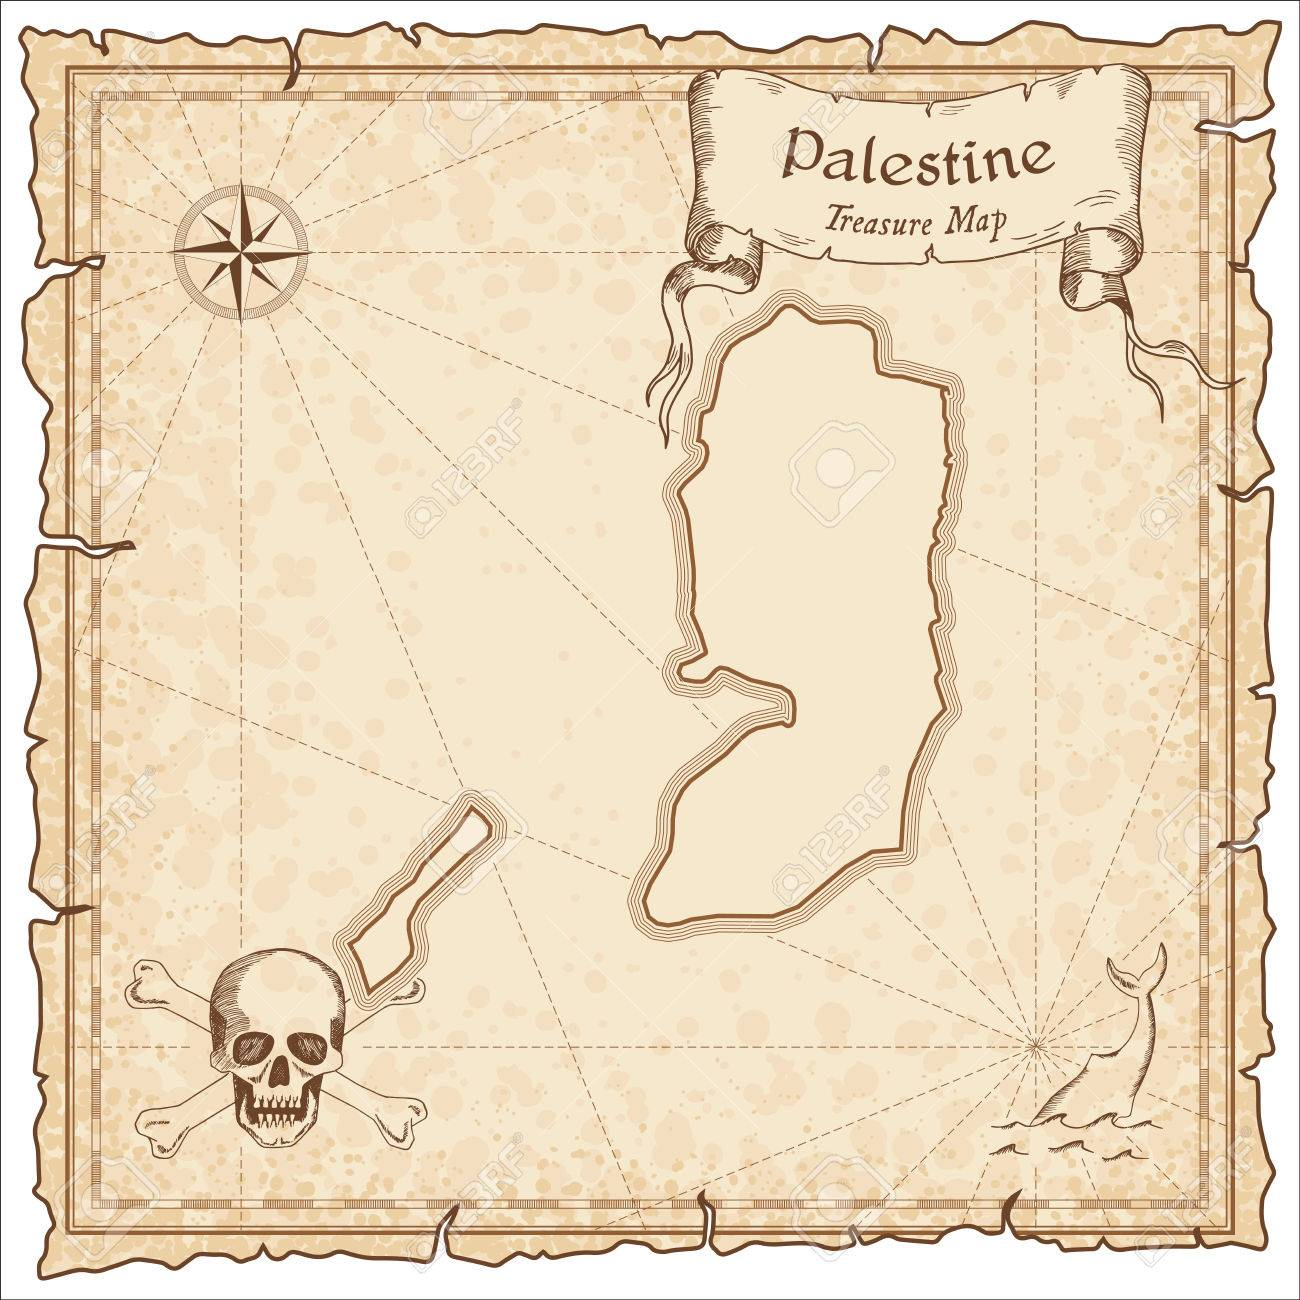 palestine old pirate map sepia engraved template of treasure